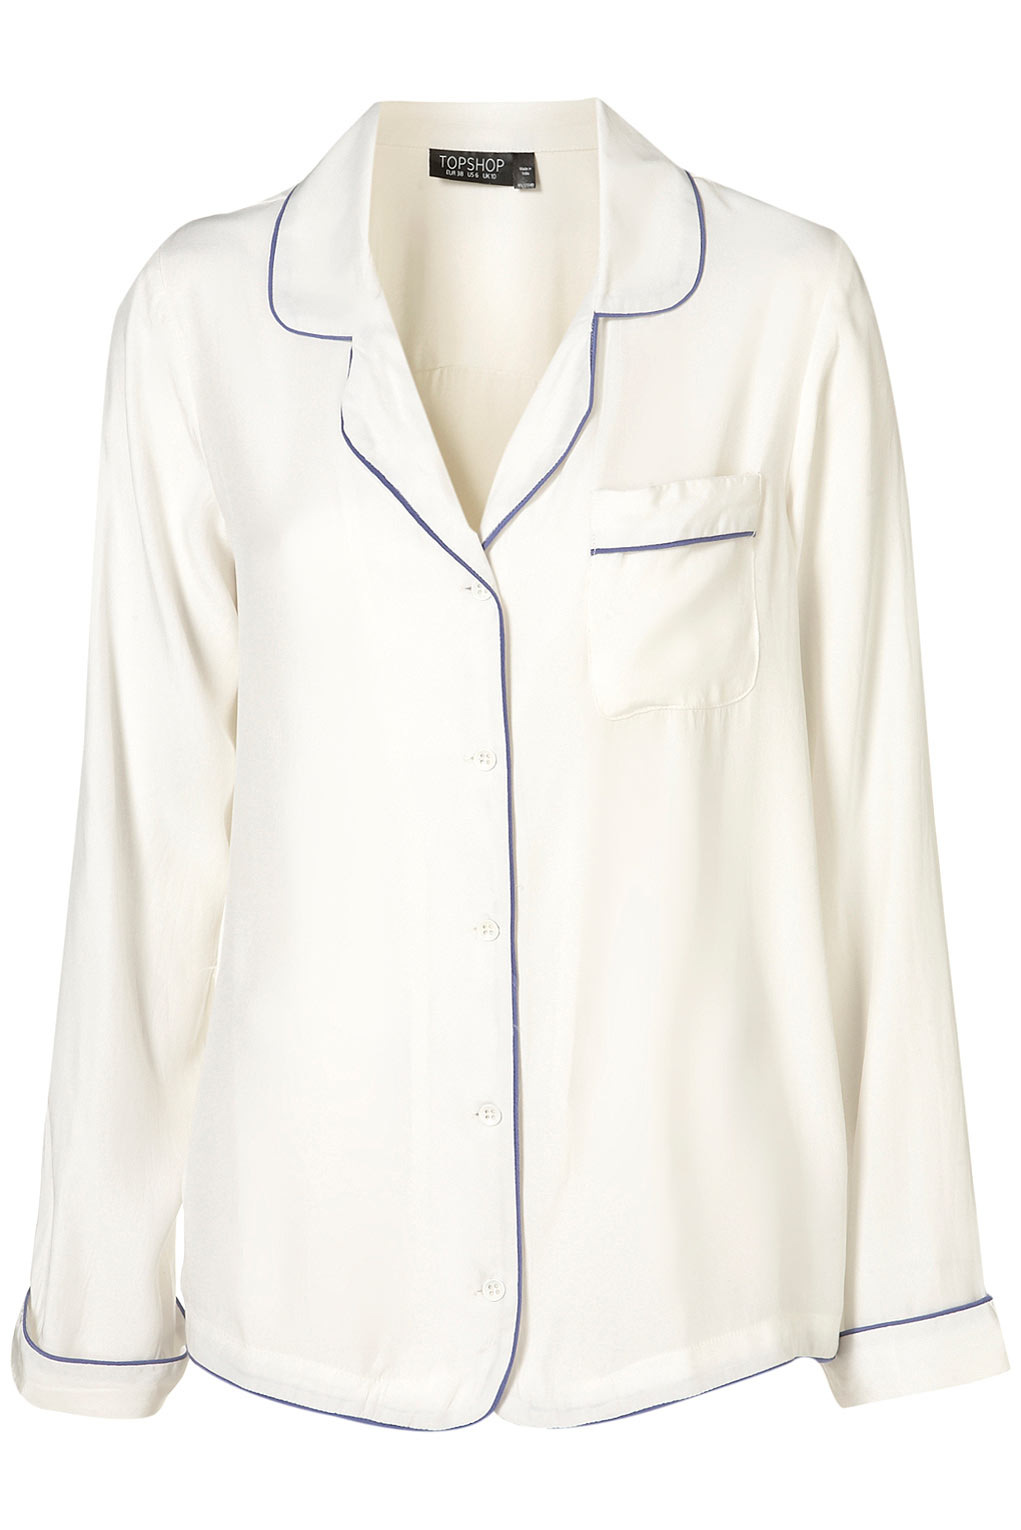 f392a4d024 Lyst - TOPSHOP Silk Pyjama Style Shirt in White